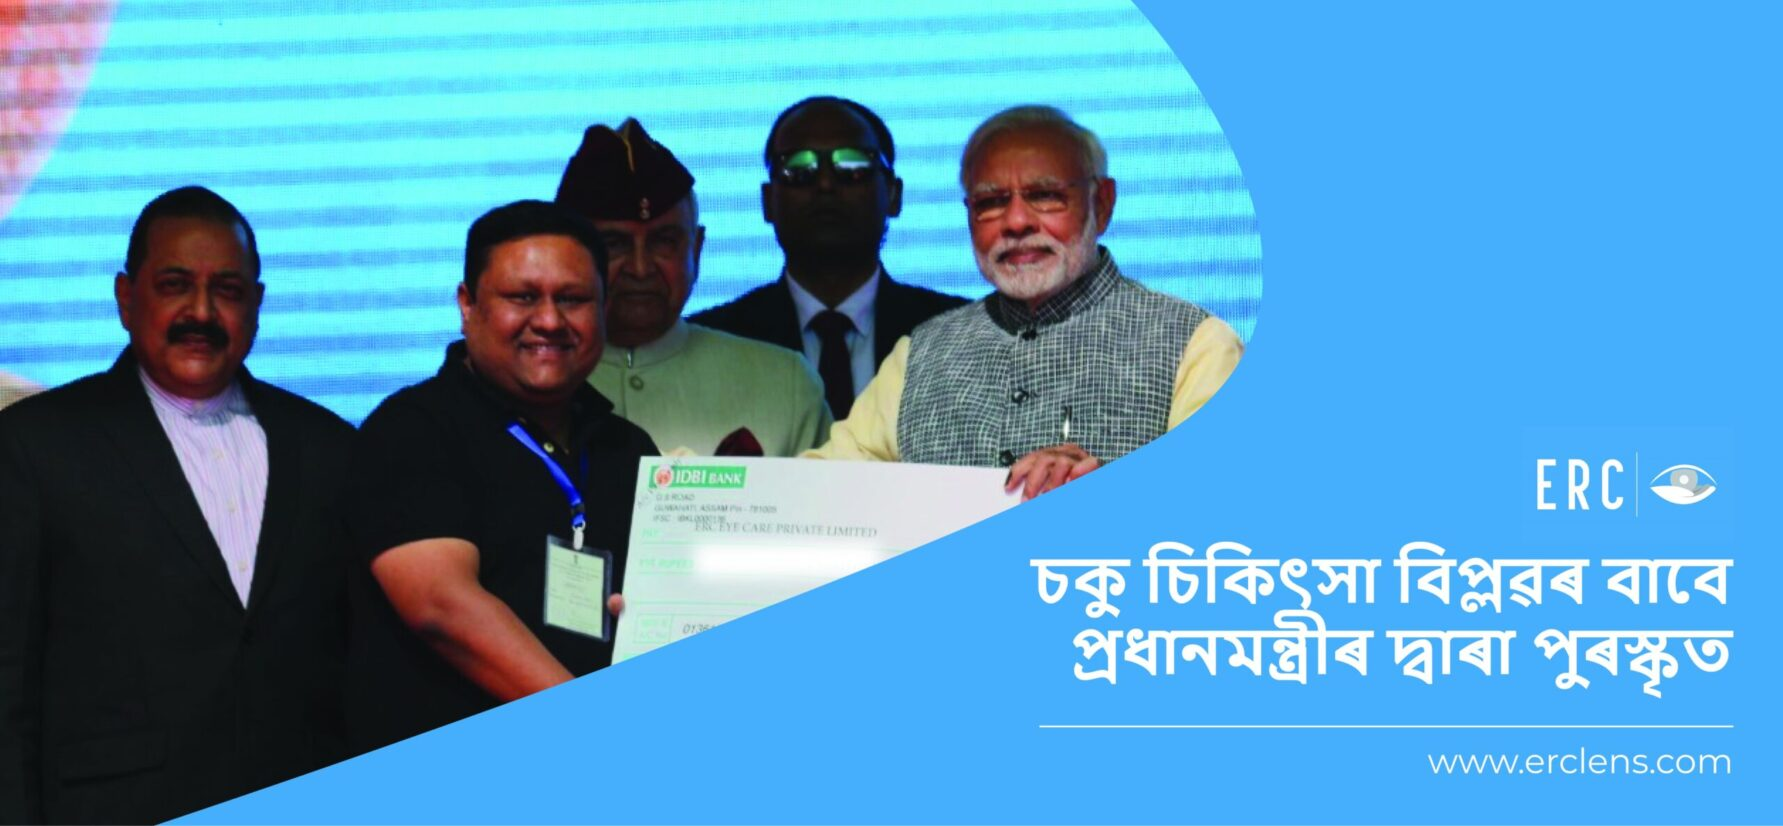 Dr. Parveez Ubed recieving award from honourable PM of India Narendra Modi